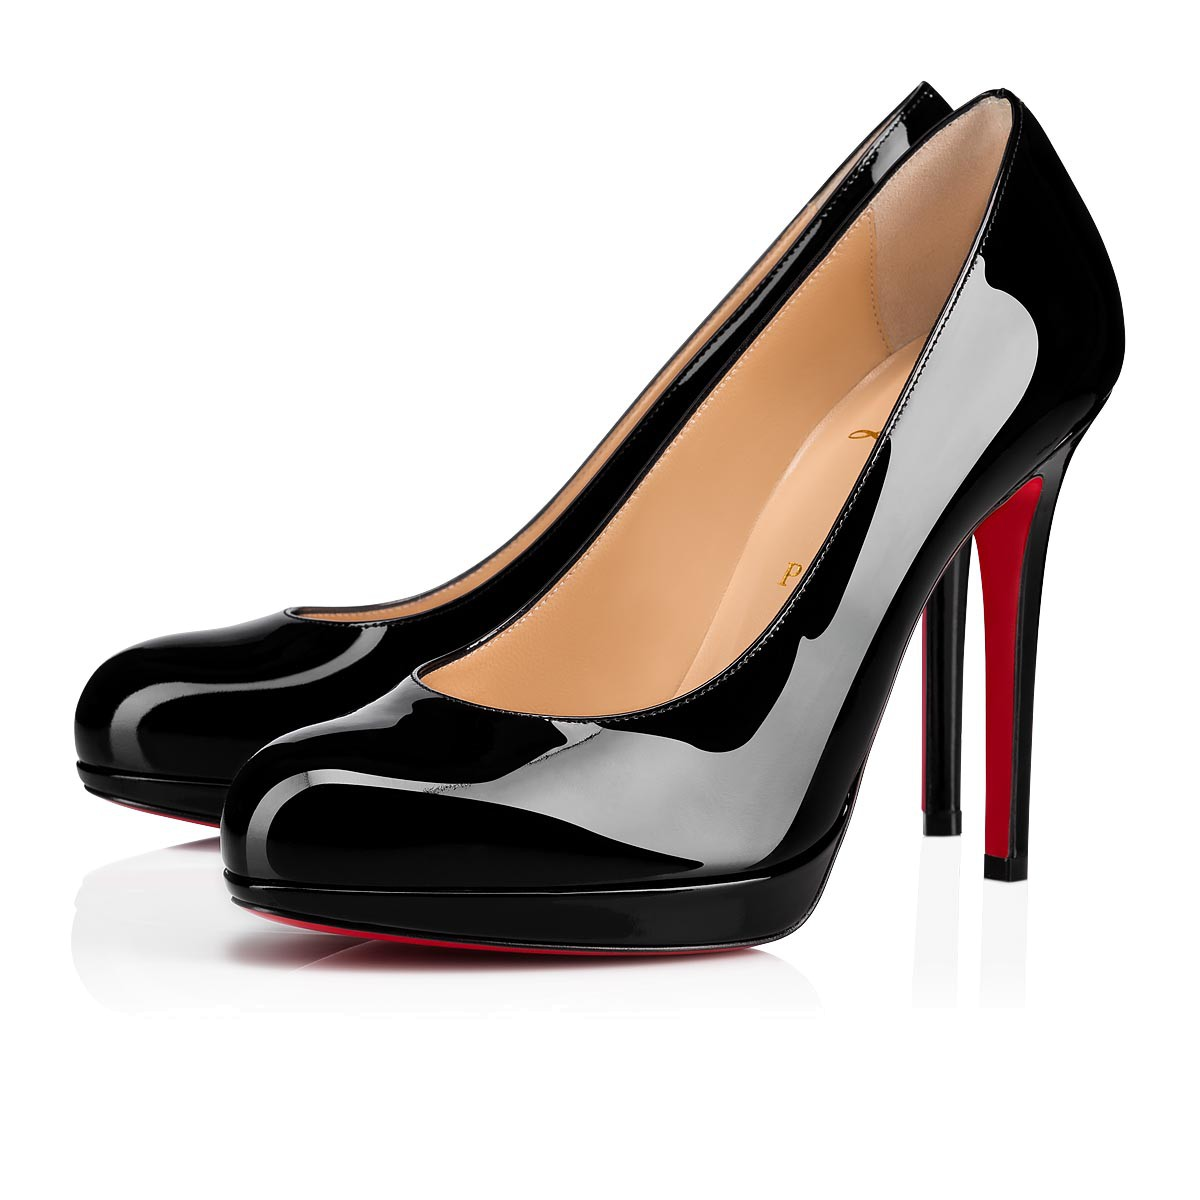 new arrival 2488e 87d86 NEW SIMPLE PUMP 120 Black Patent Calfskin - Women Shoes - Christian  Louboutin